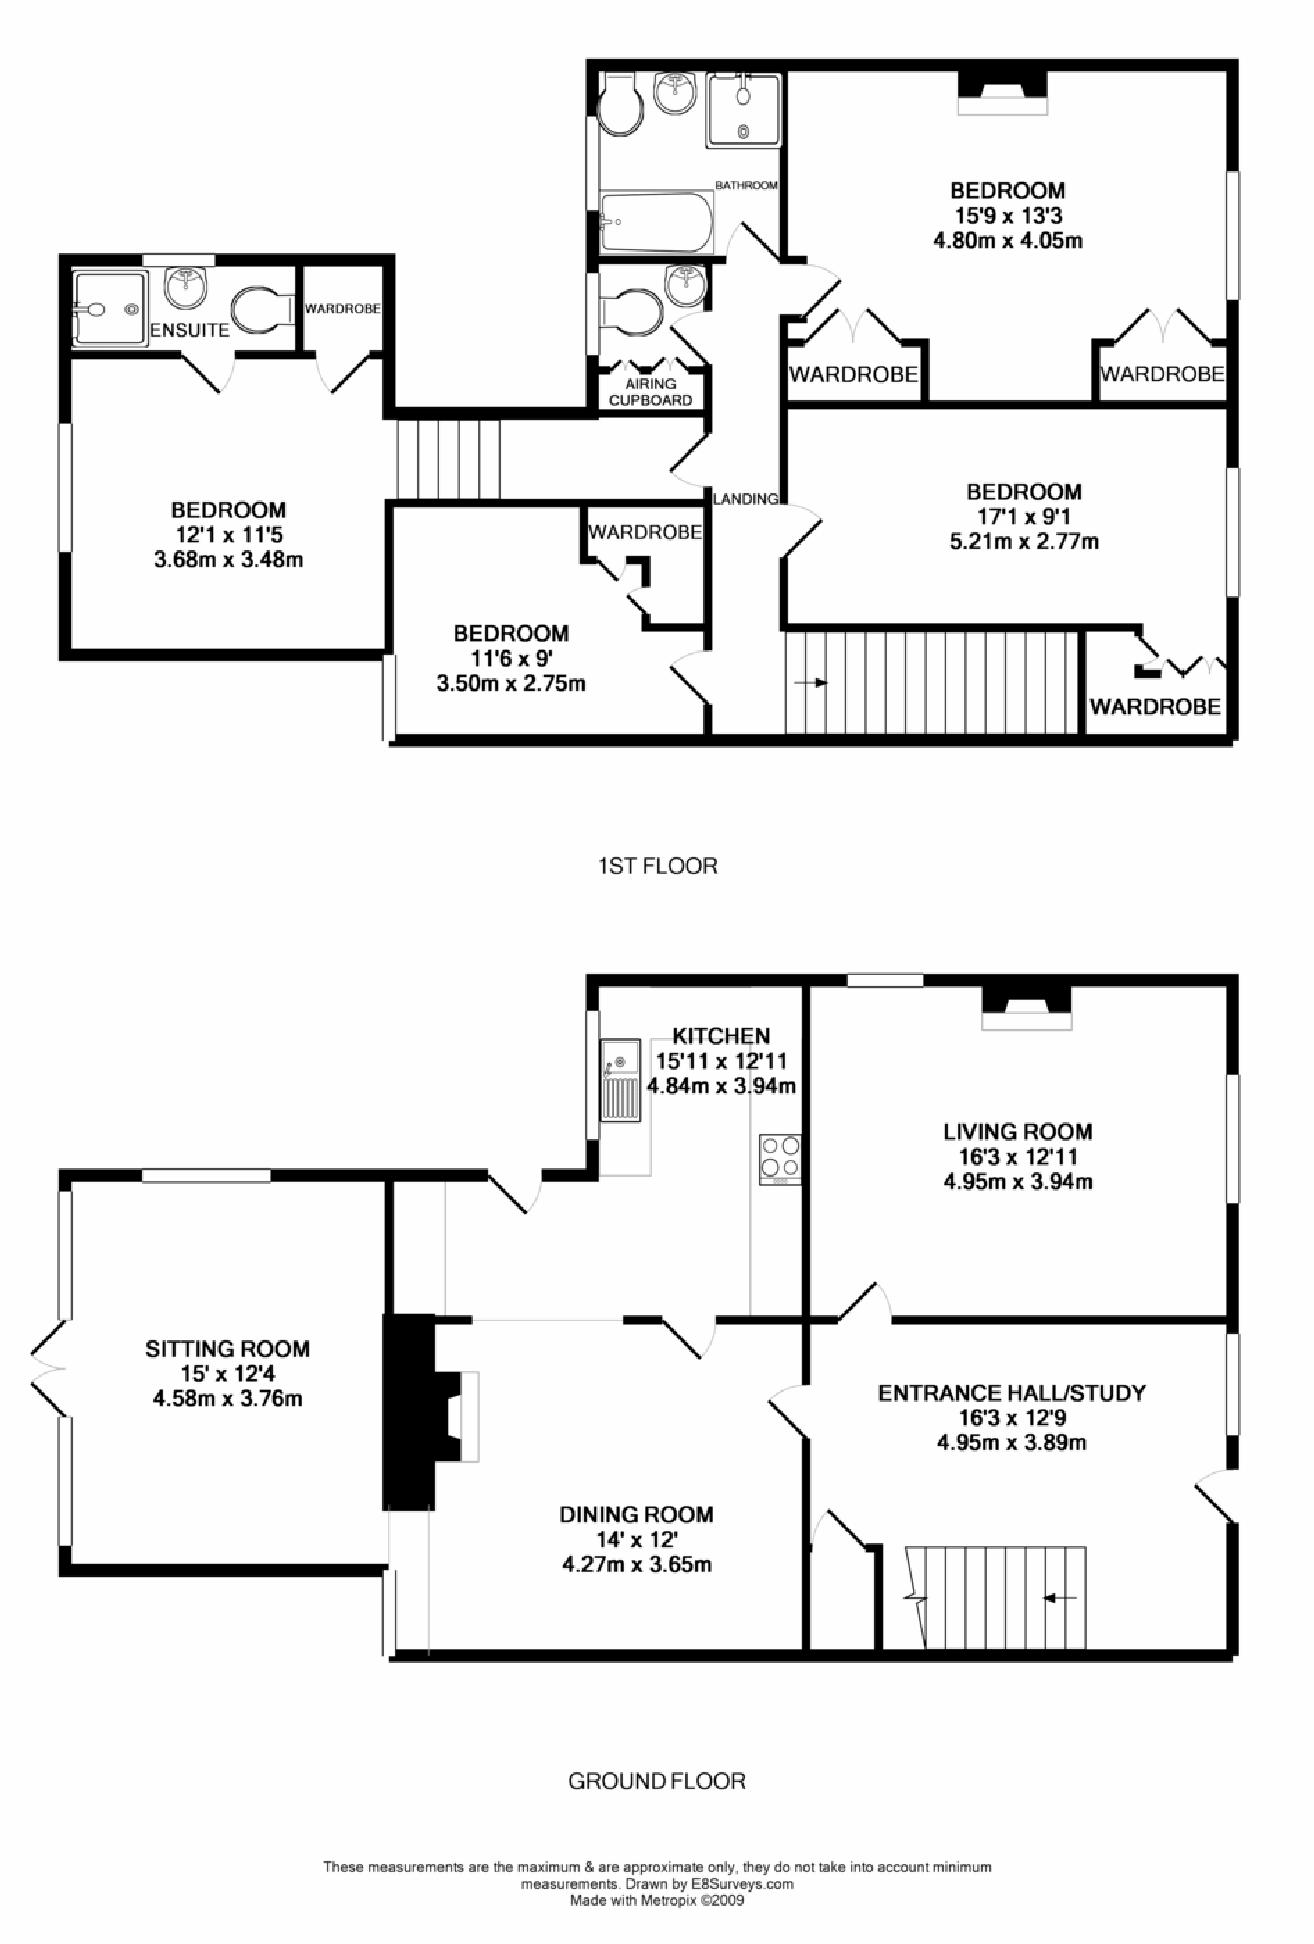 Black And White Floor Plans as well Metal Shop Plans in addition 2201 Square Feet 3 Bedrooms 4 Bathroom Beach Home Plans 0 Garage 33094 besides Apartments L Shaped 3 Bedroom House Plans Ranch House Farmhouse 699f9c2fc38064c1 additionally Falco. on barndominium